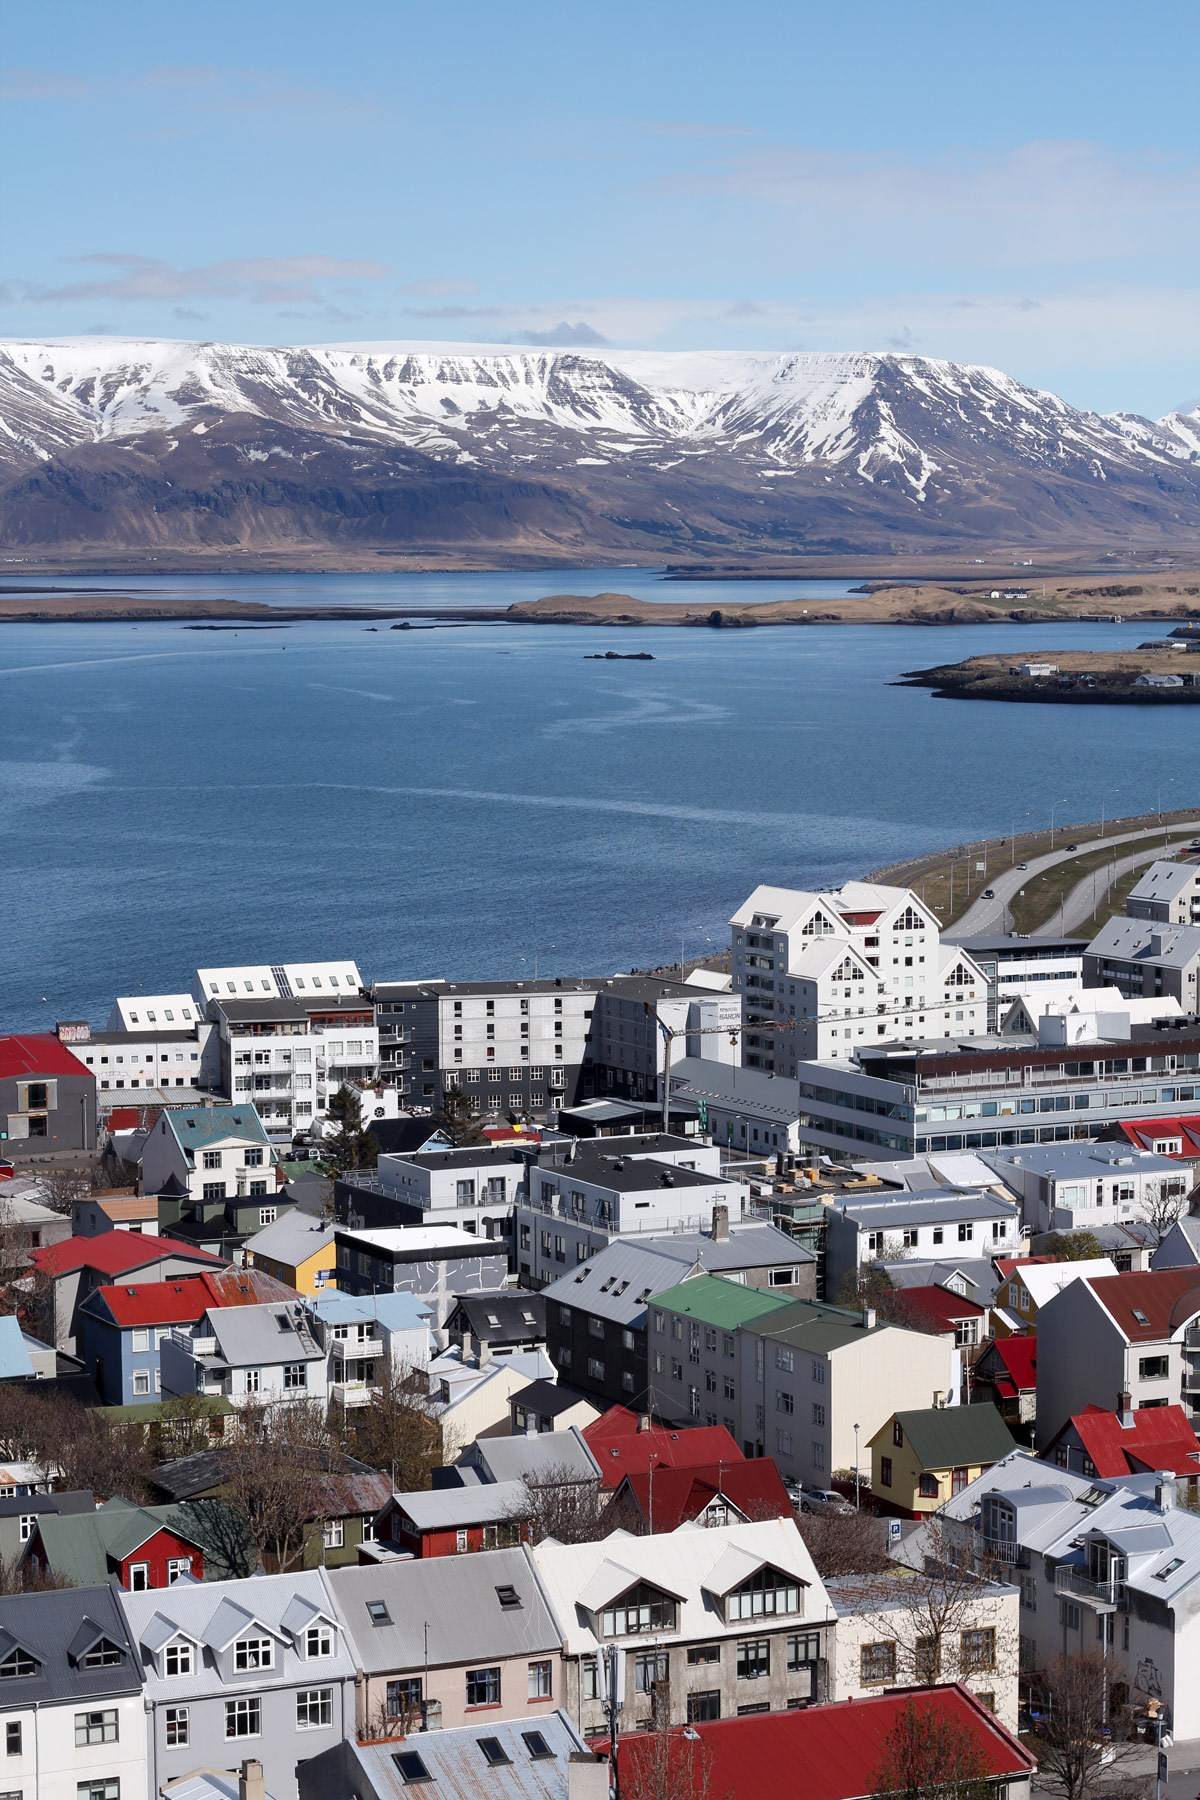 iceland-reykjavik-keflavik-review-photo-diary-travel-blog-church-view-4